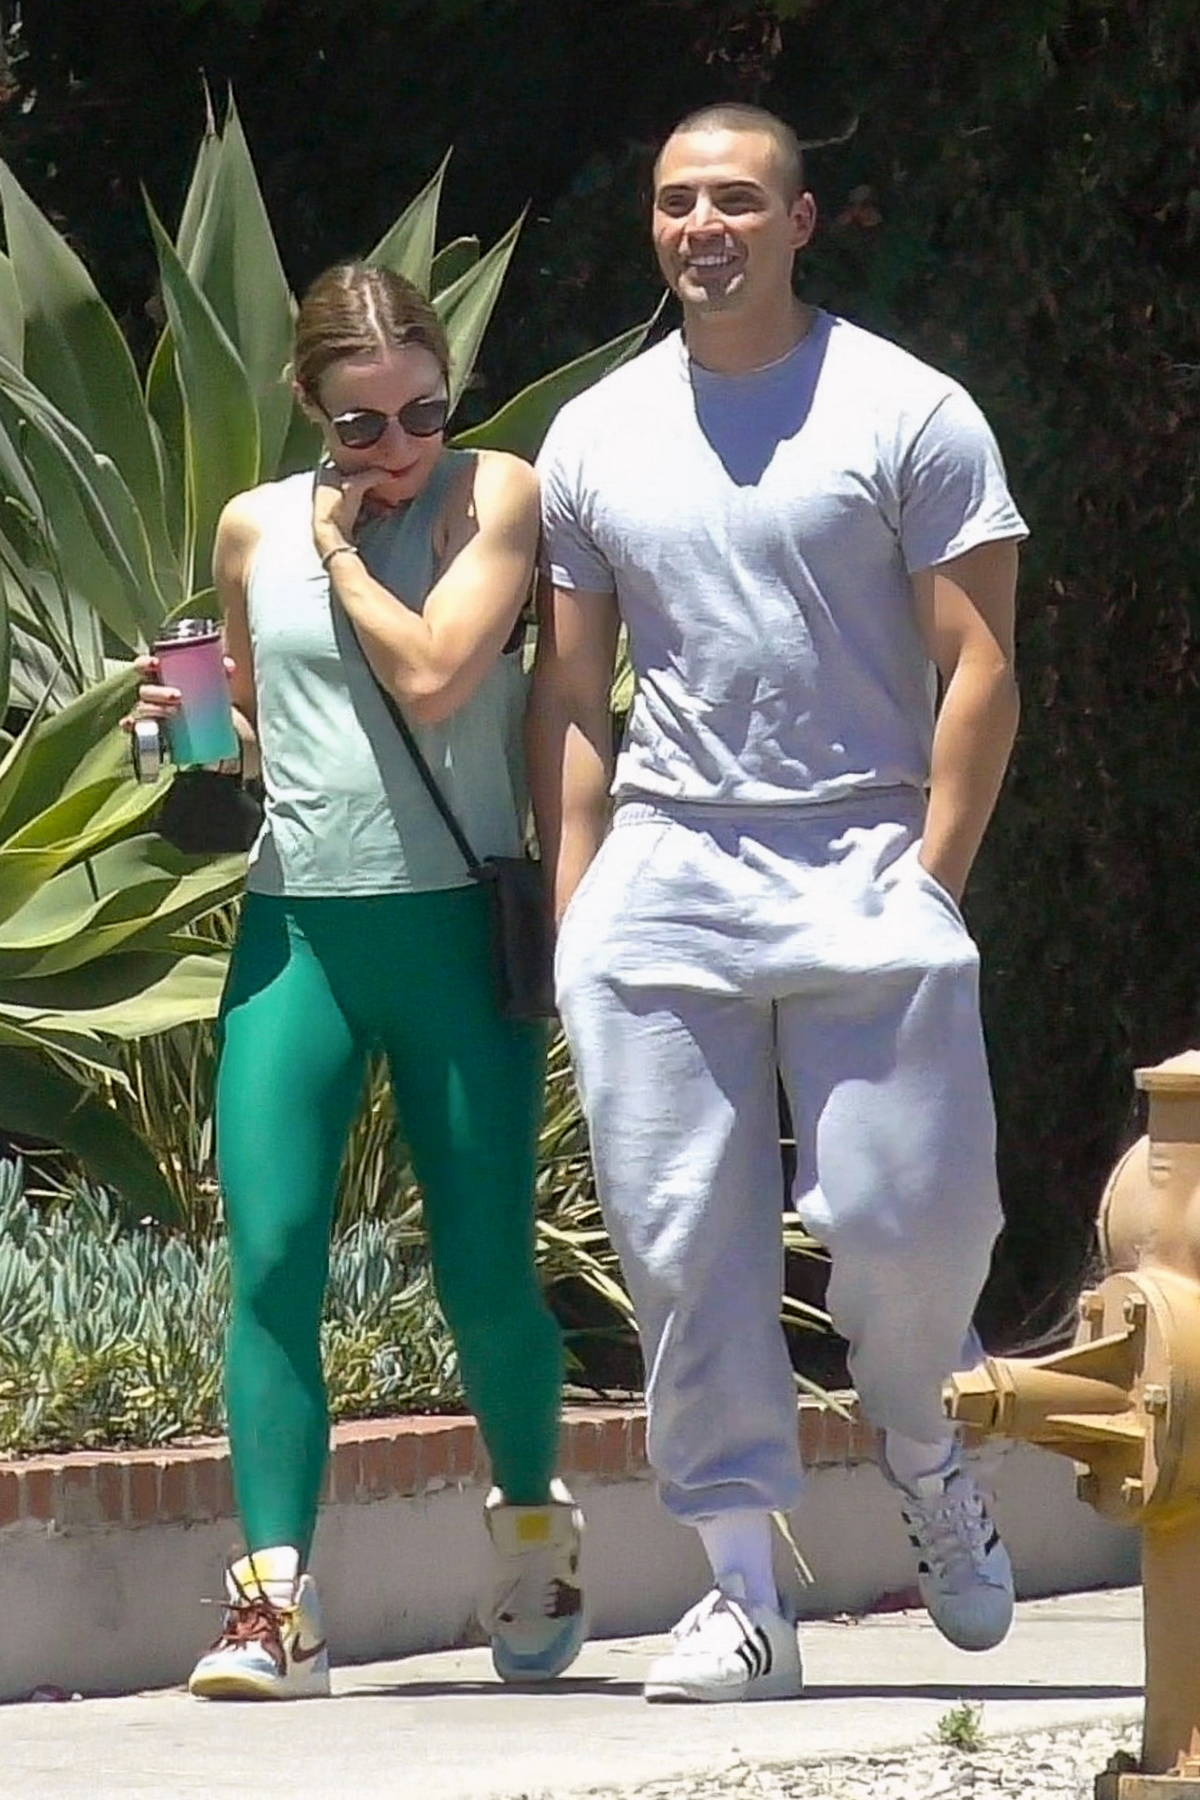 Kristen Bell sports green leggings and a mint-green top as she leaves the gym with Benjamin Levy Aguilar in Los Feliz, California